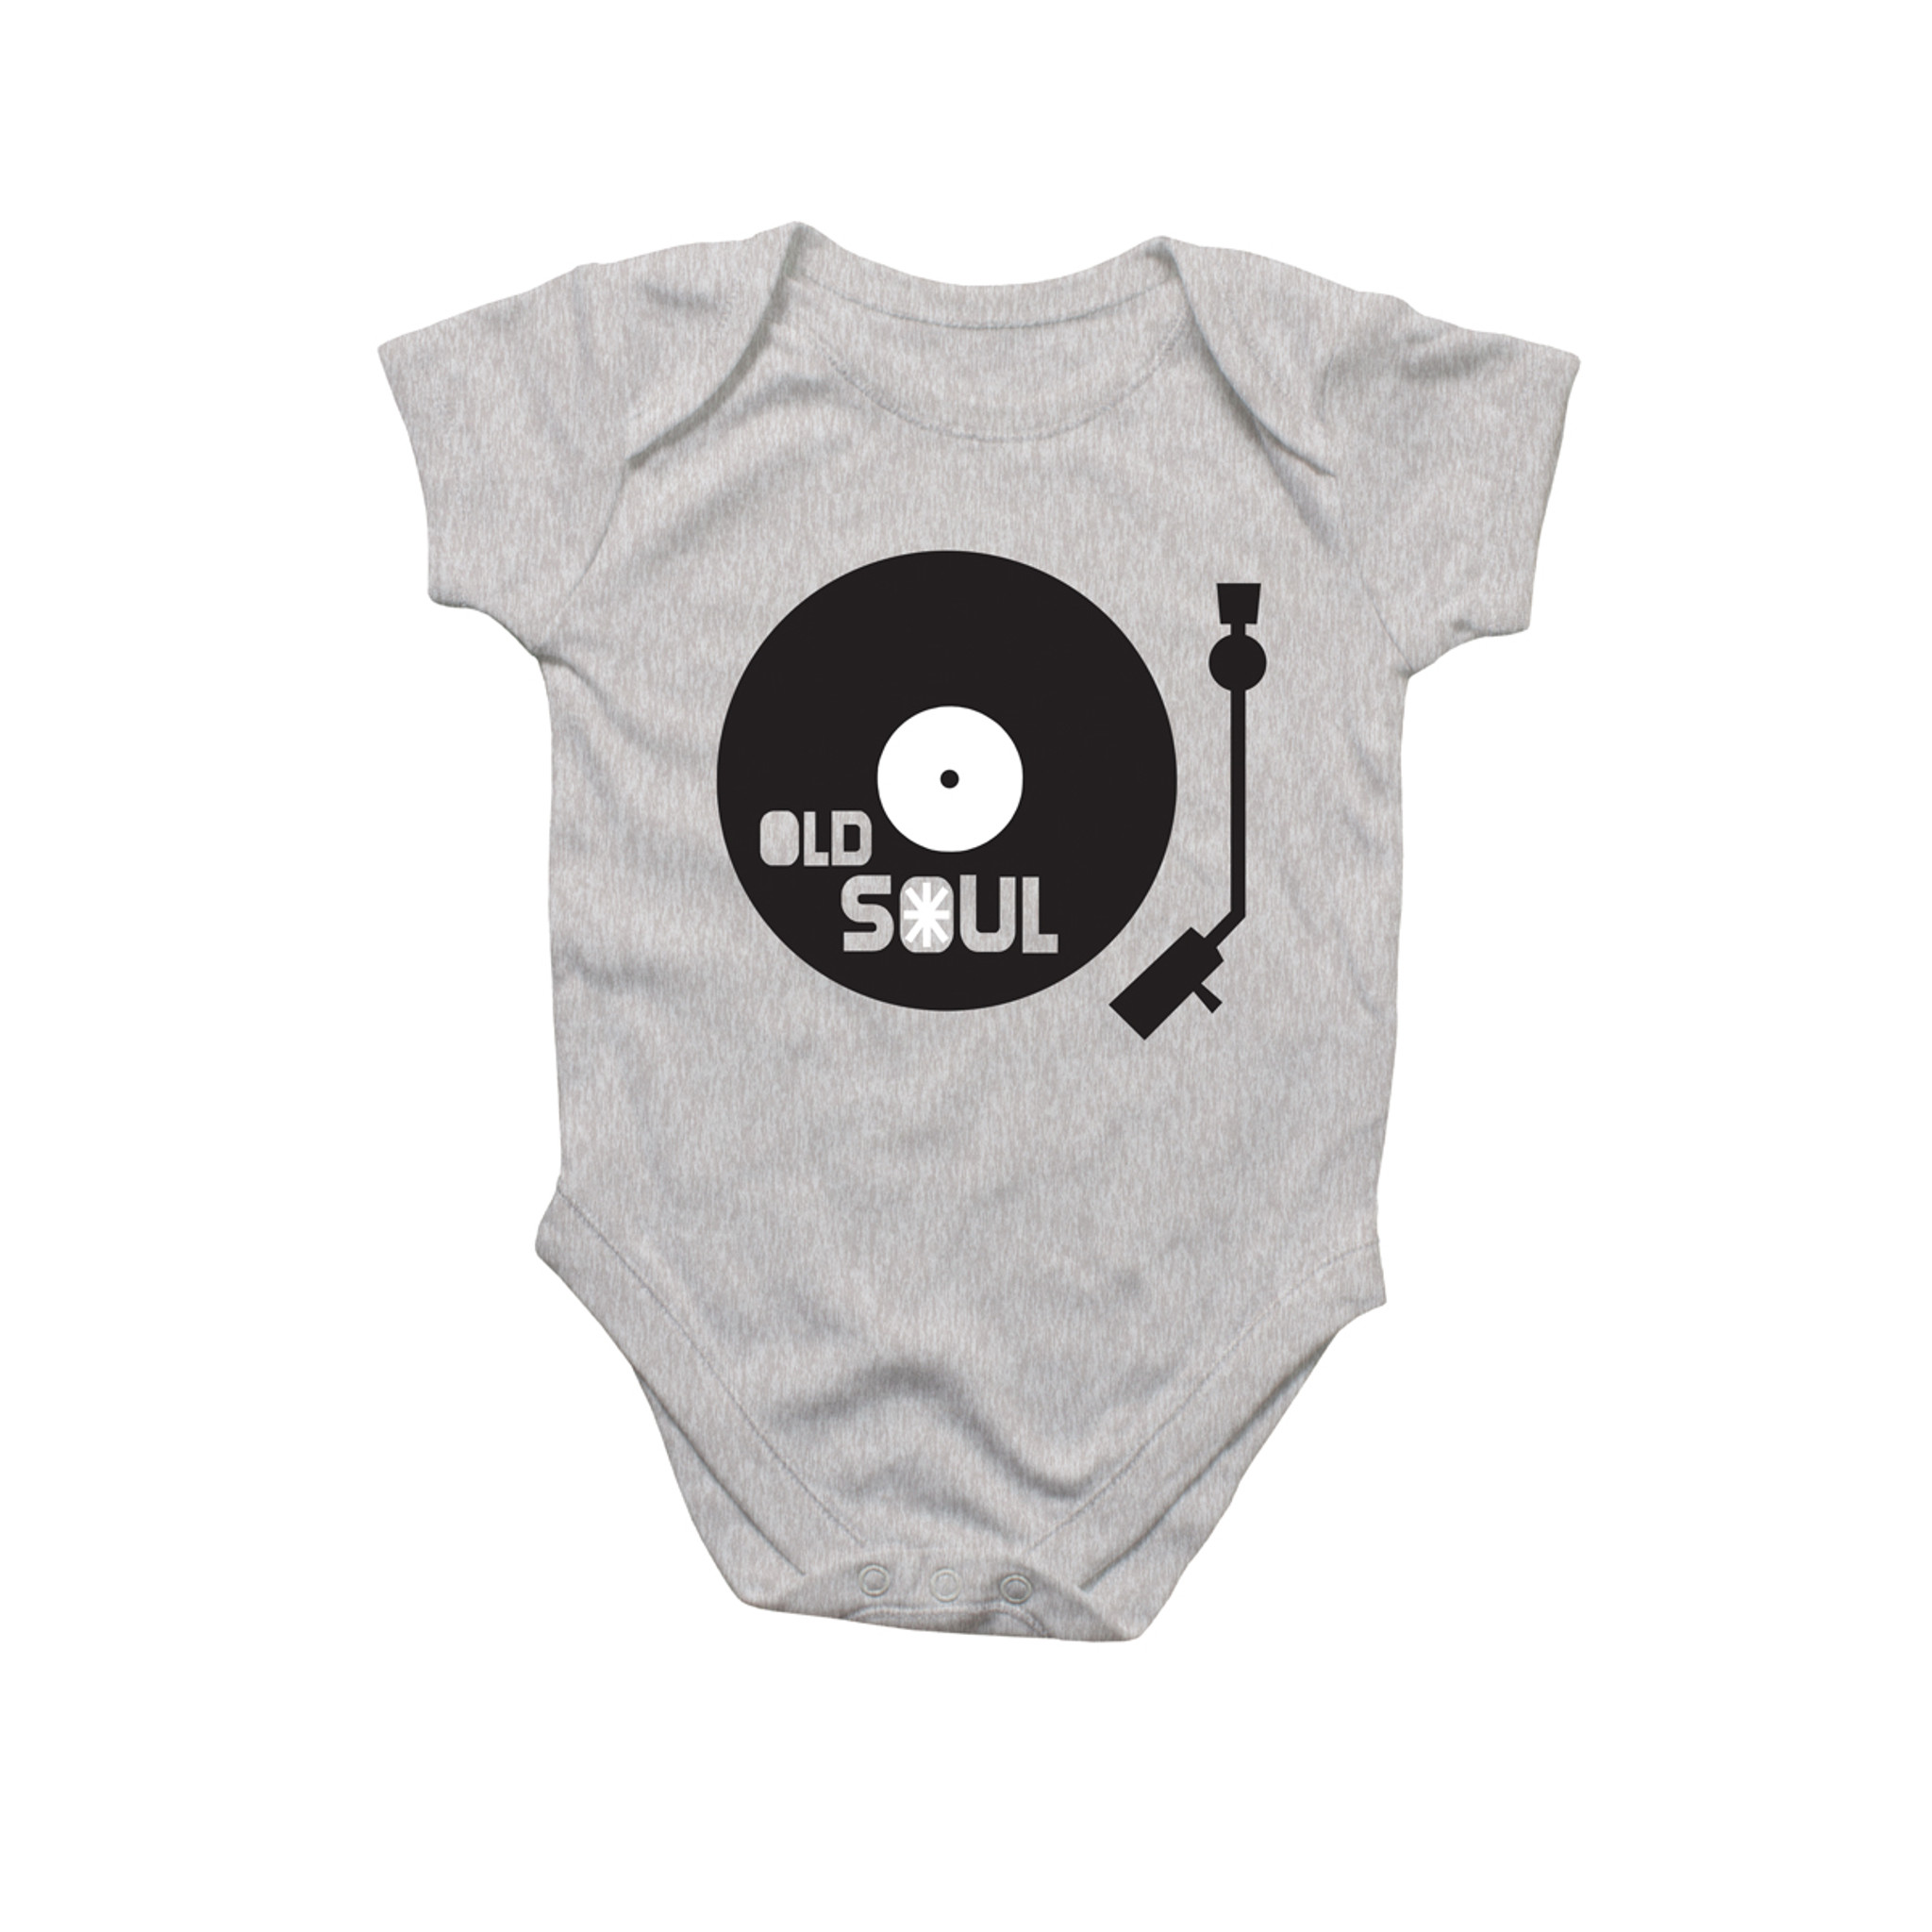 Old Soul Baby Bodysuit